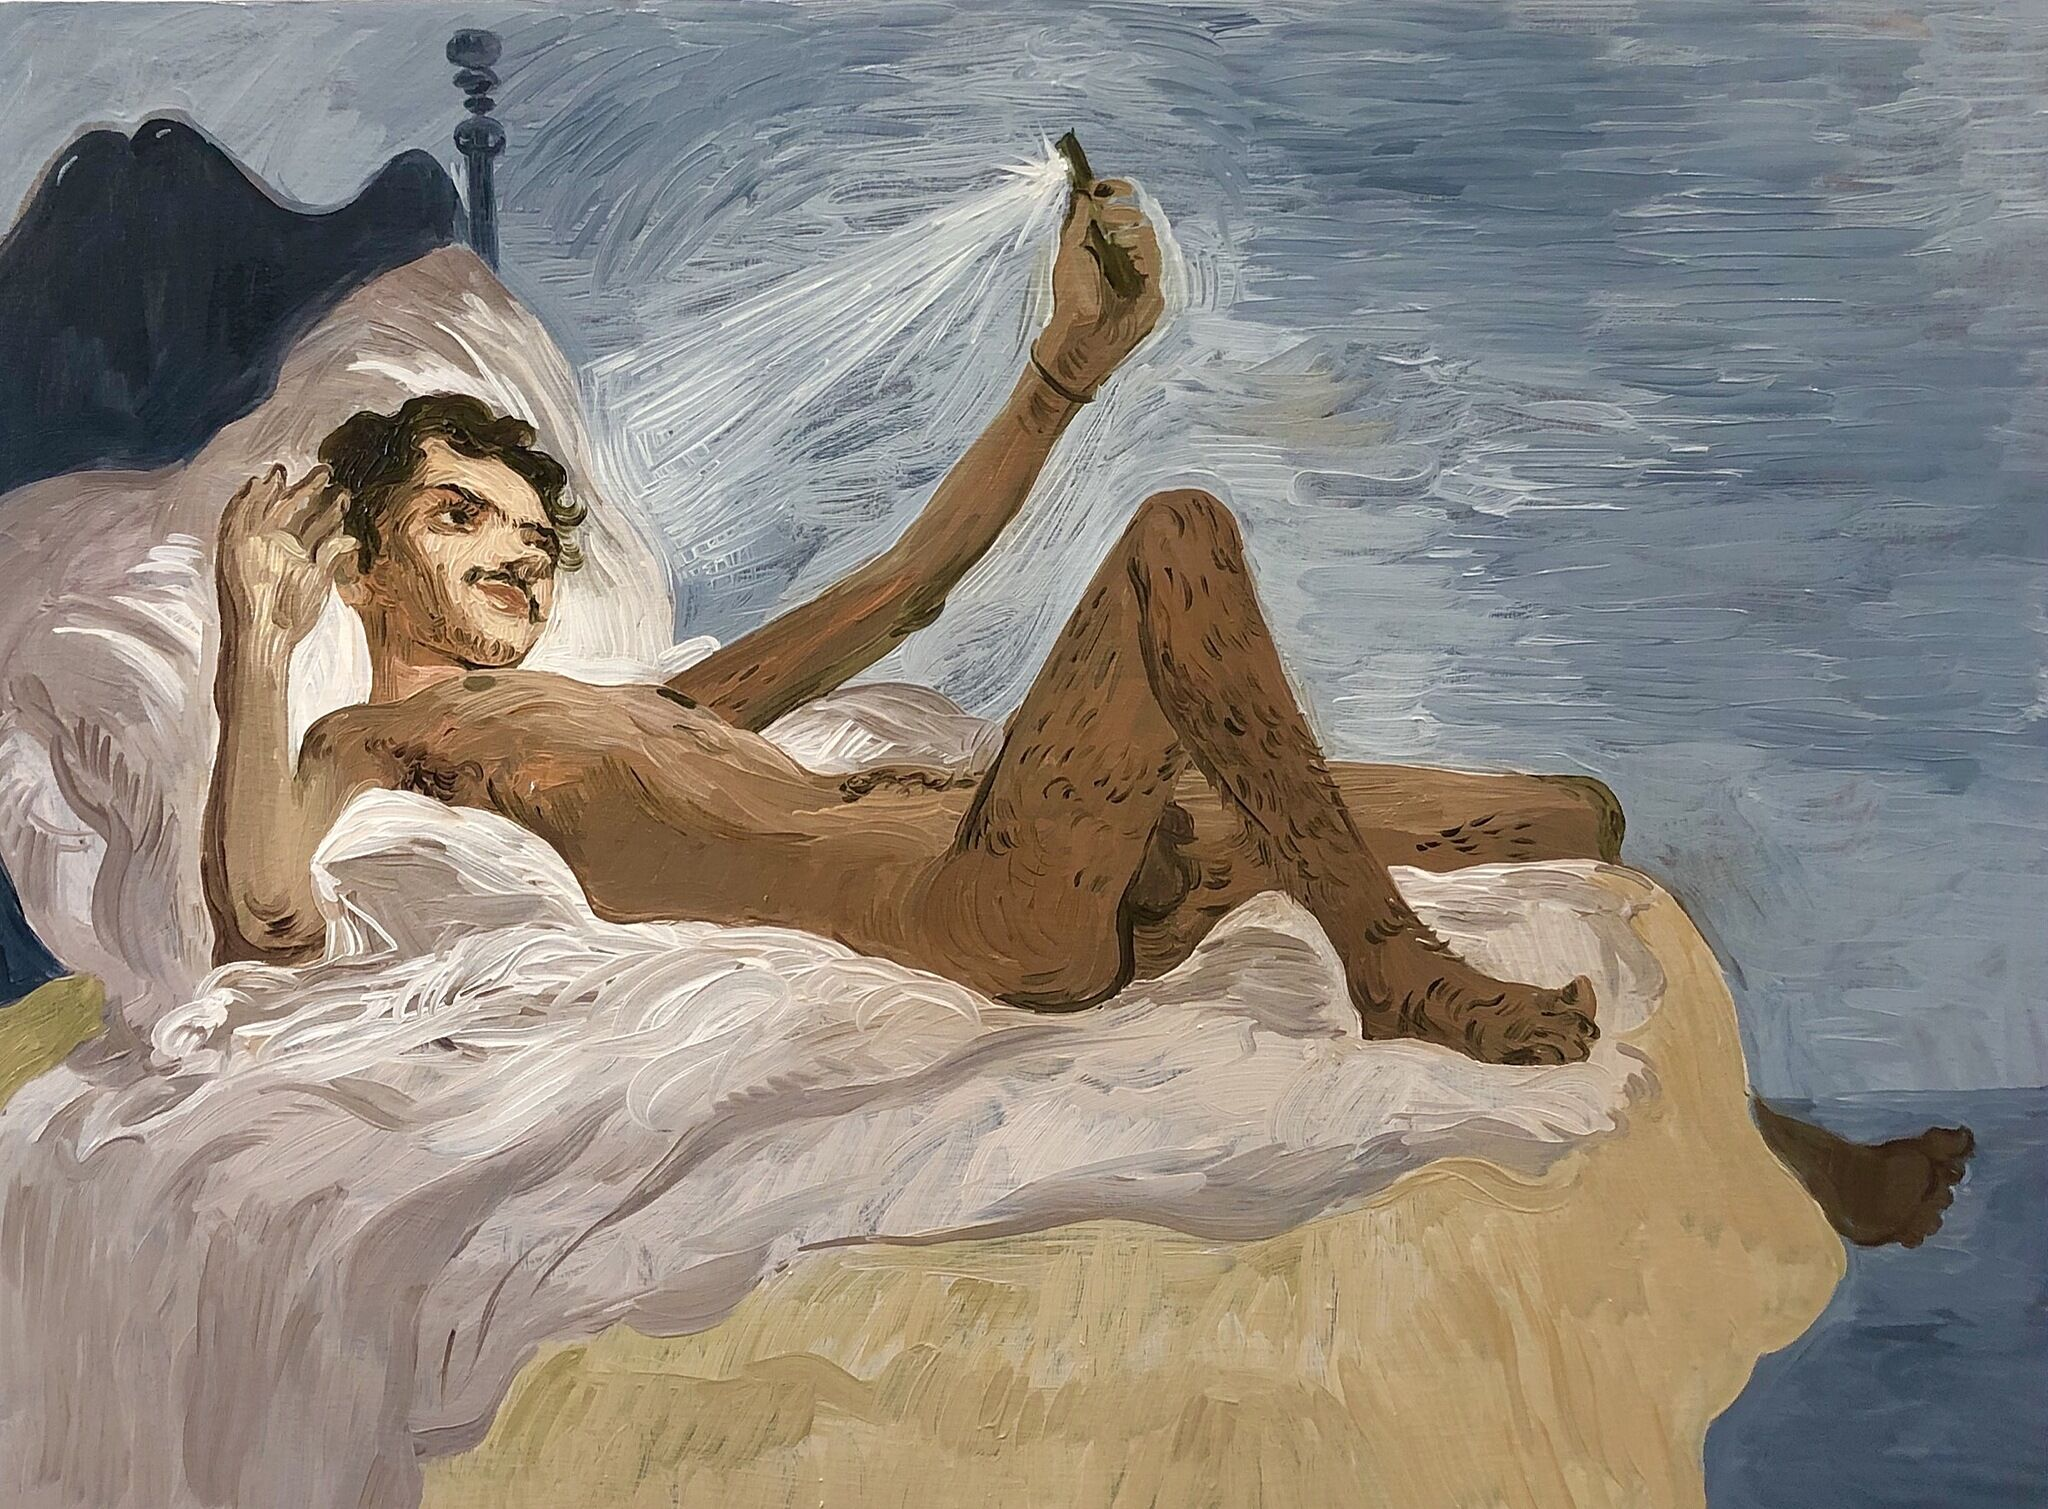 A painting of a man naked in bed taking a photo of himself.